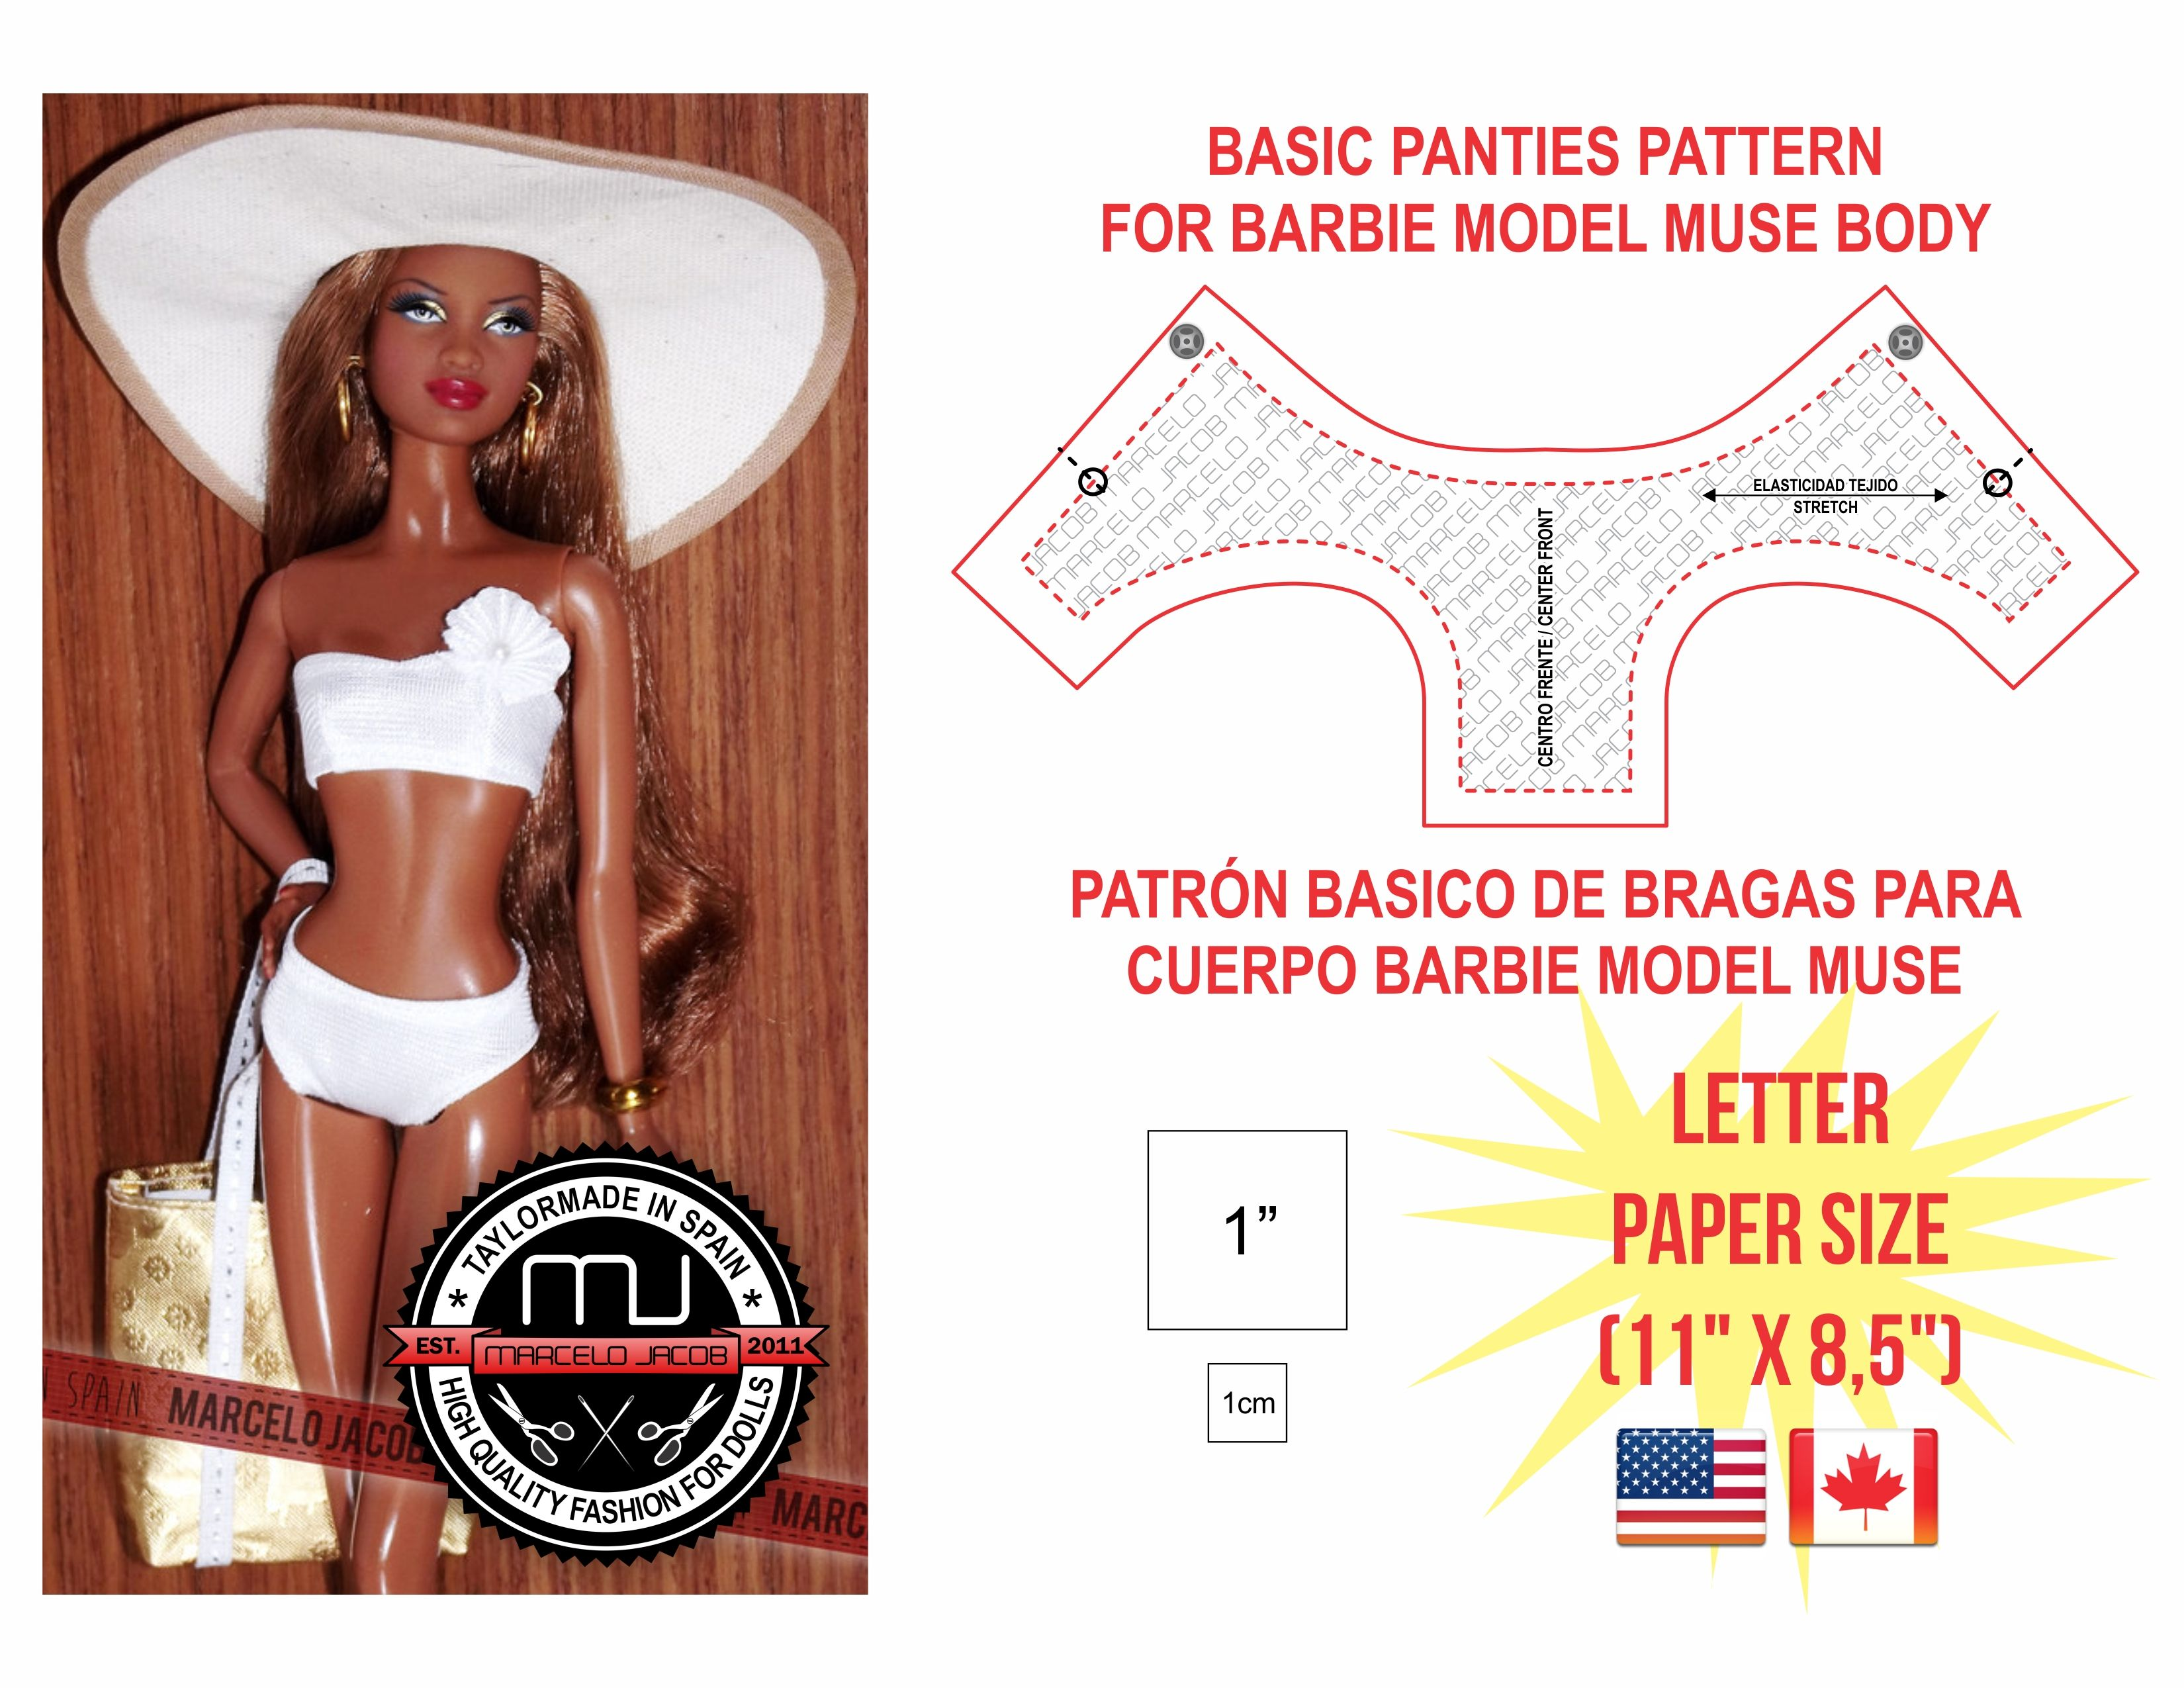 91c30ce28a Prinable pattern of panties for Barbie Model Muse